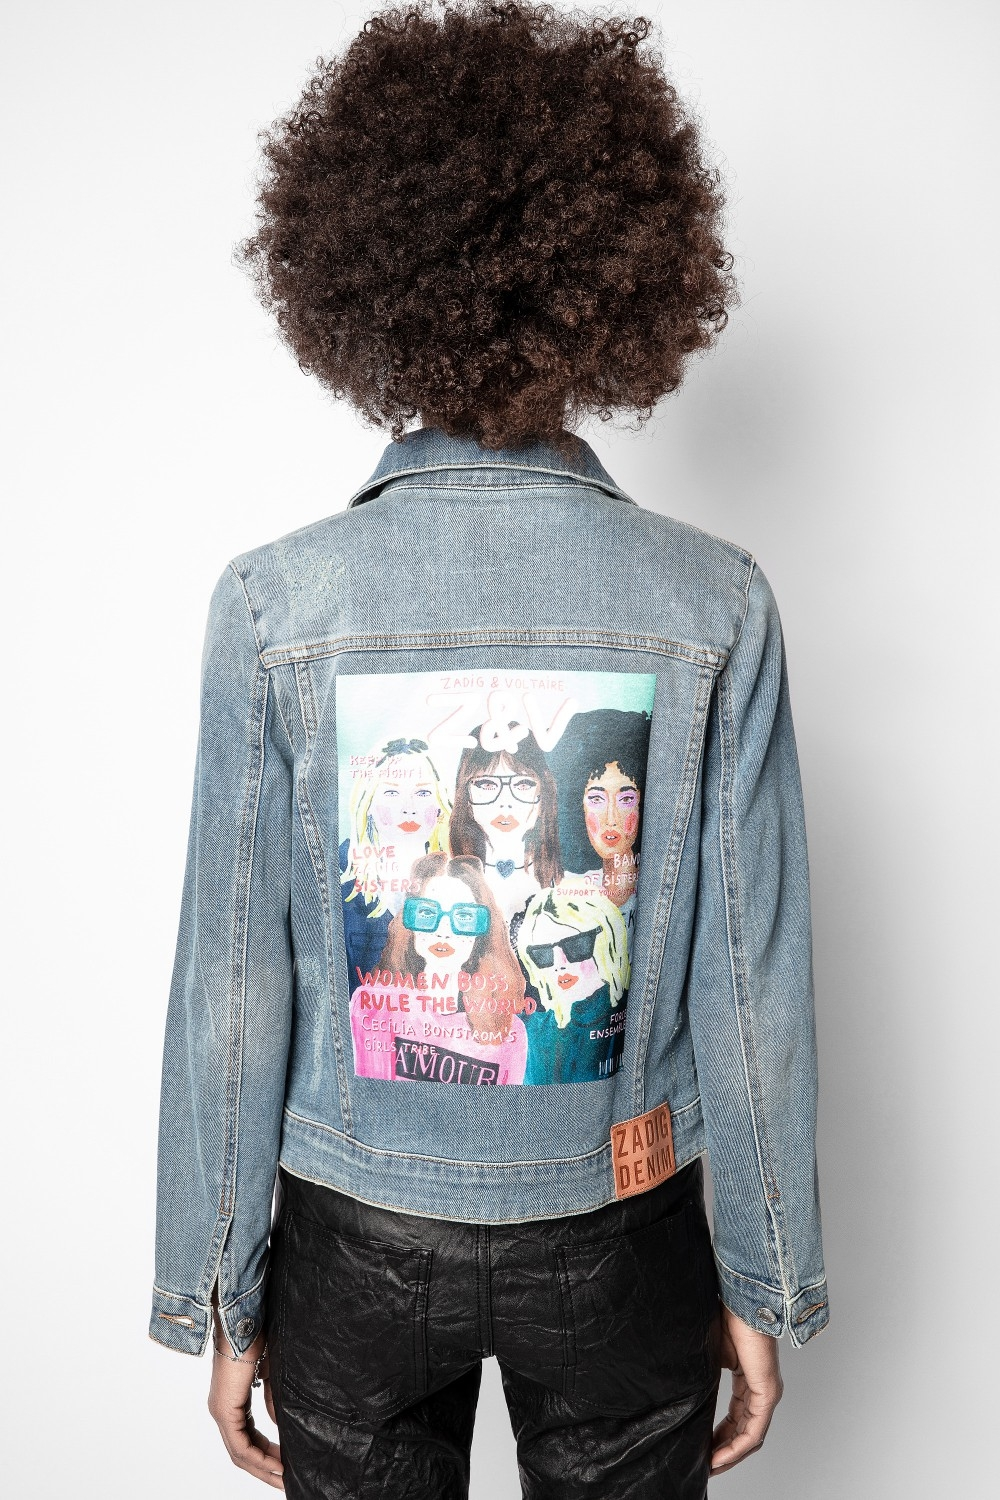 Kioky Band of Sisters Jacket